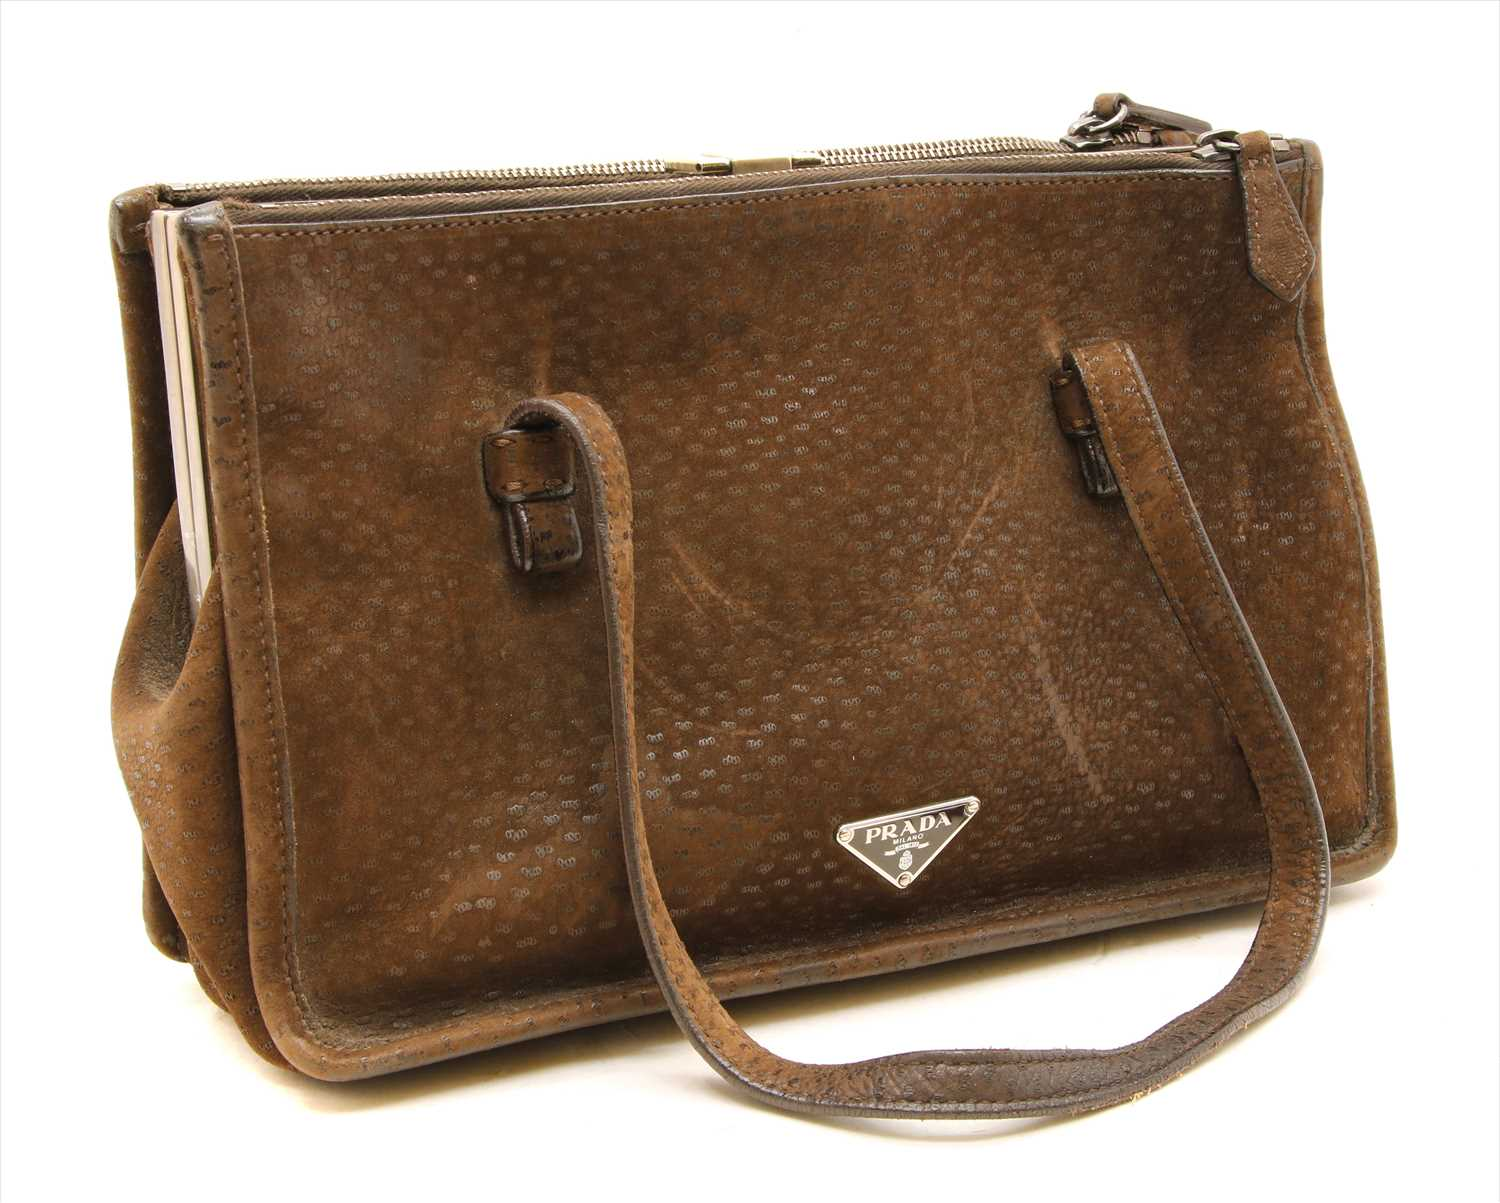 Lot 1015-A Prada semitracolla brown suede bag